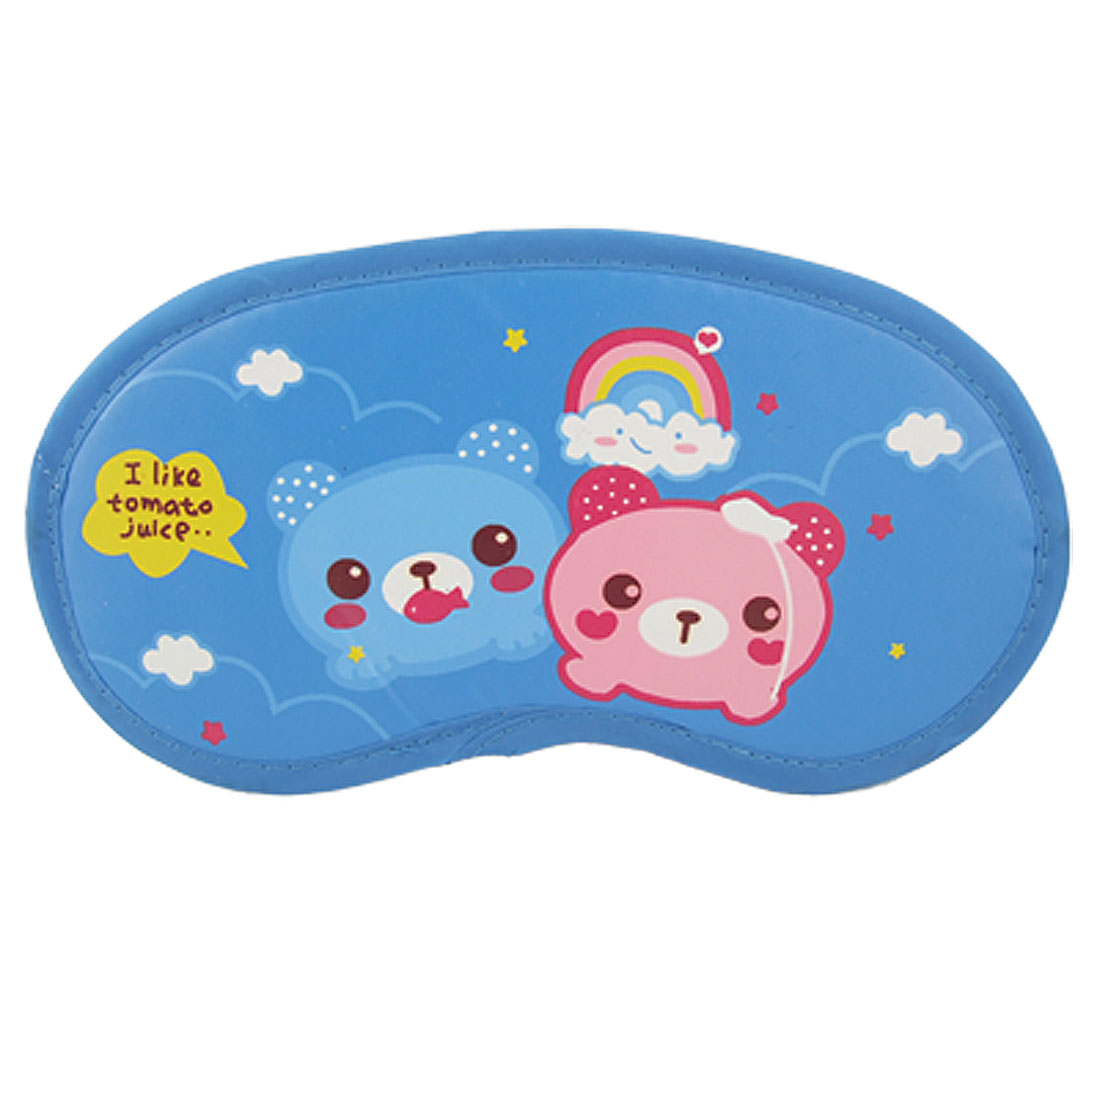 Cartoon Travel Sleeping Eyemask Eye Mask Shade Cover Blue